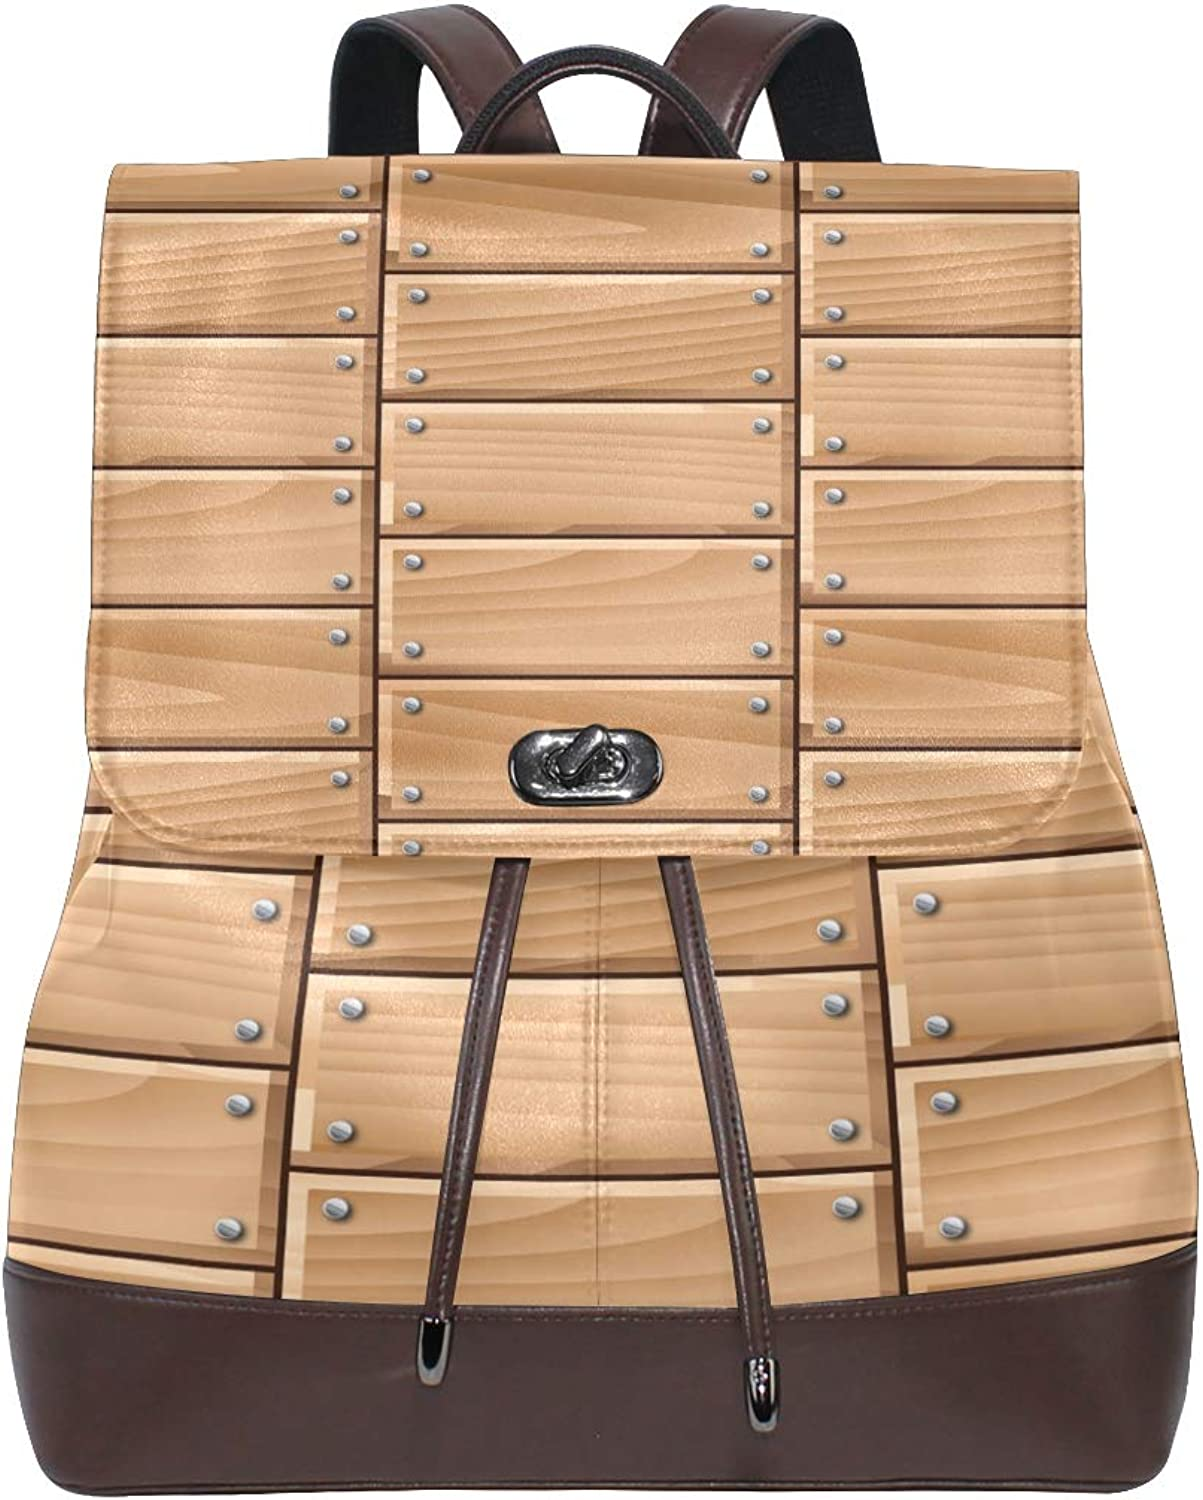 FAJRO Fresh Wood Siding Wall Travel Backpack Leather Handbag School Pack